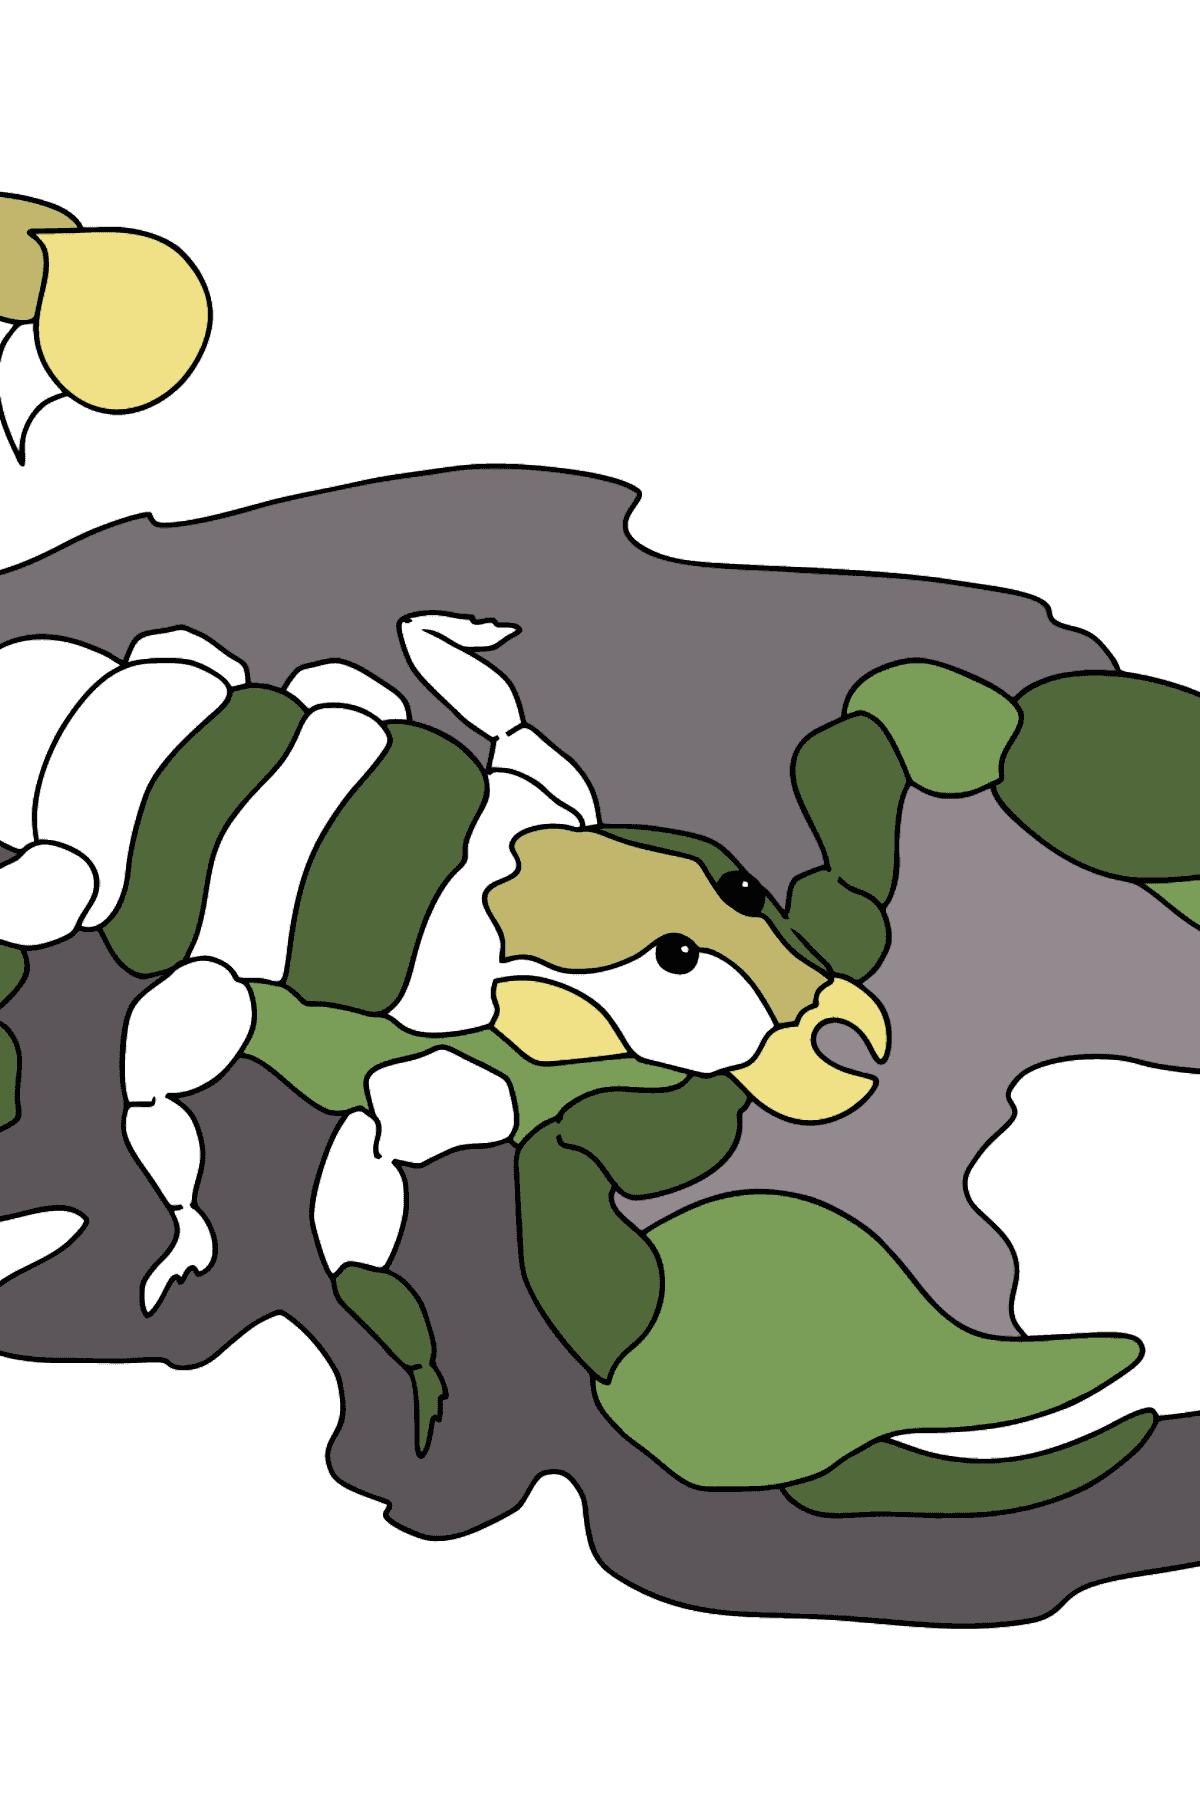 A Scorpion Coloring Page  - Coloring Pages for Kids